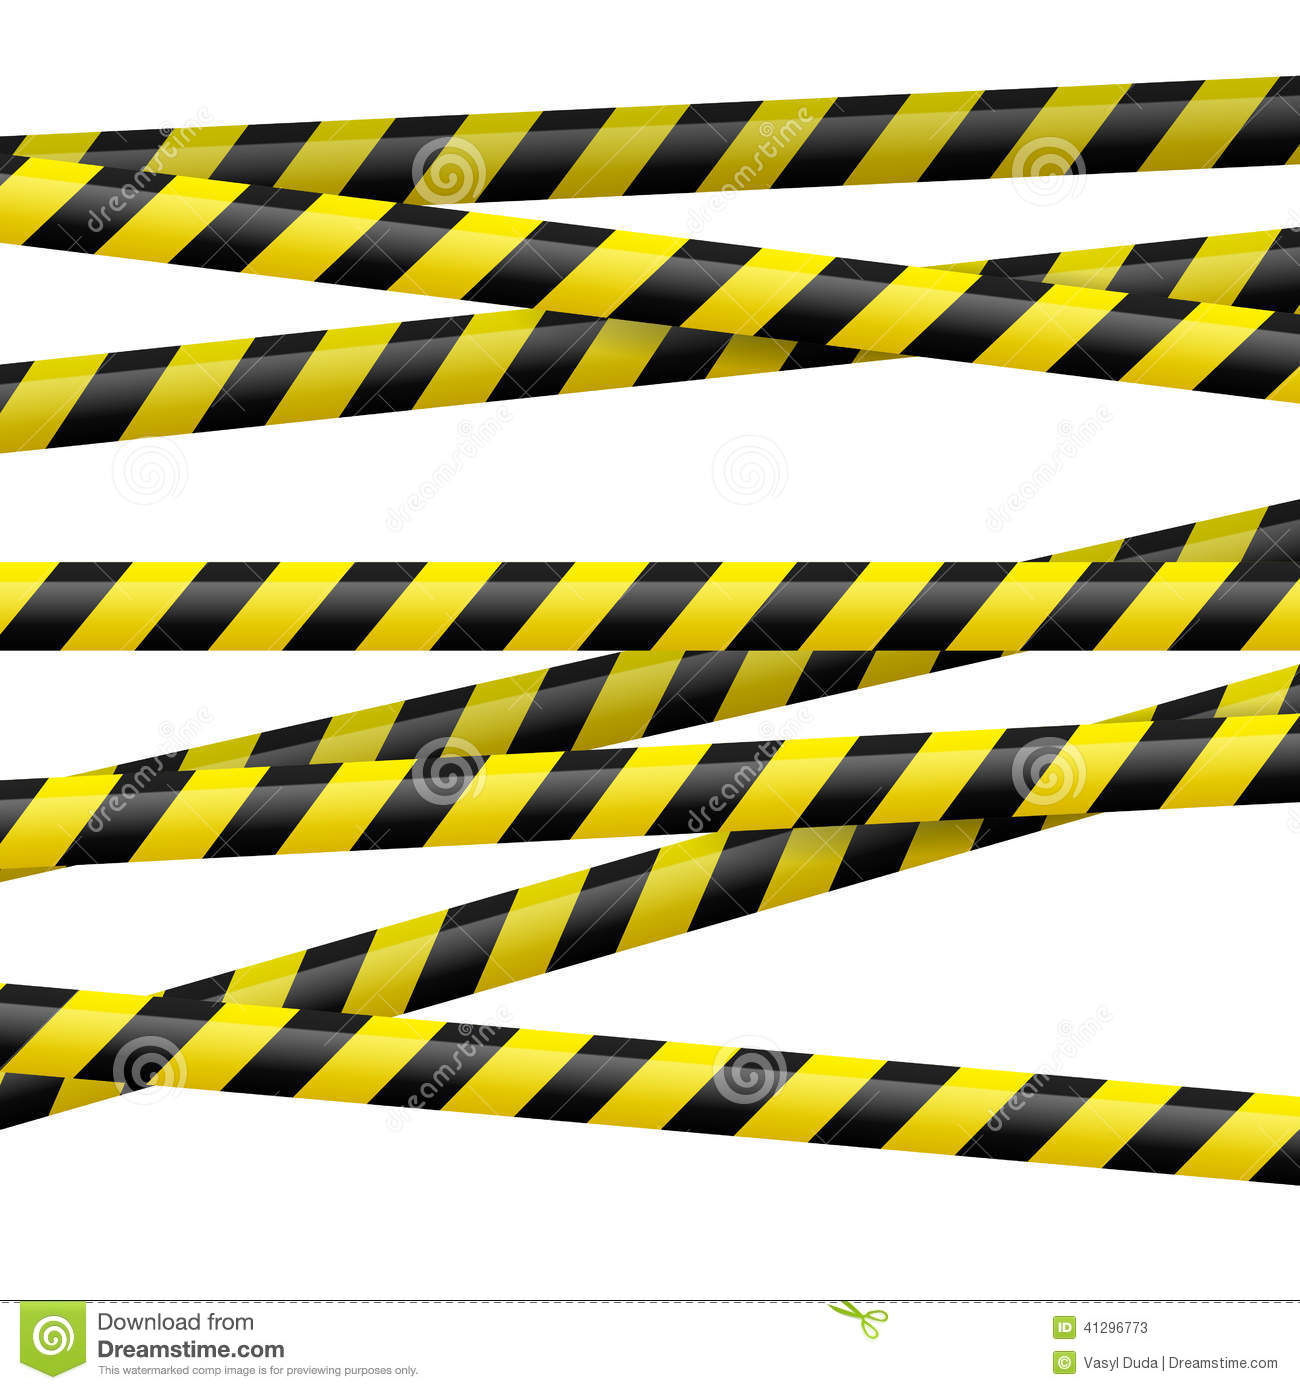 Lufkin Mw18mct as well Lady Gaga Guy together with 1600x1200 in addition Blog Post 30 further Faith Love Hope. on caution tape